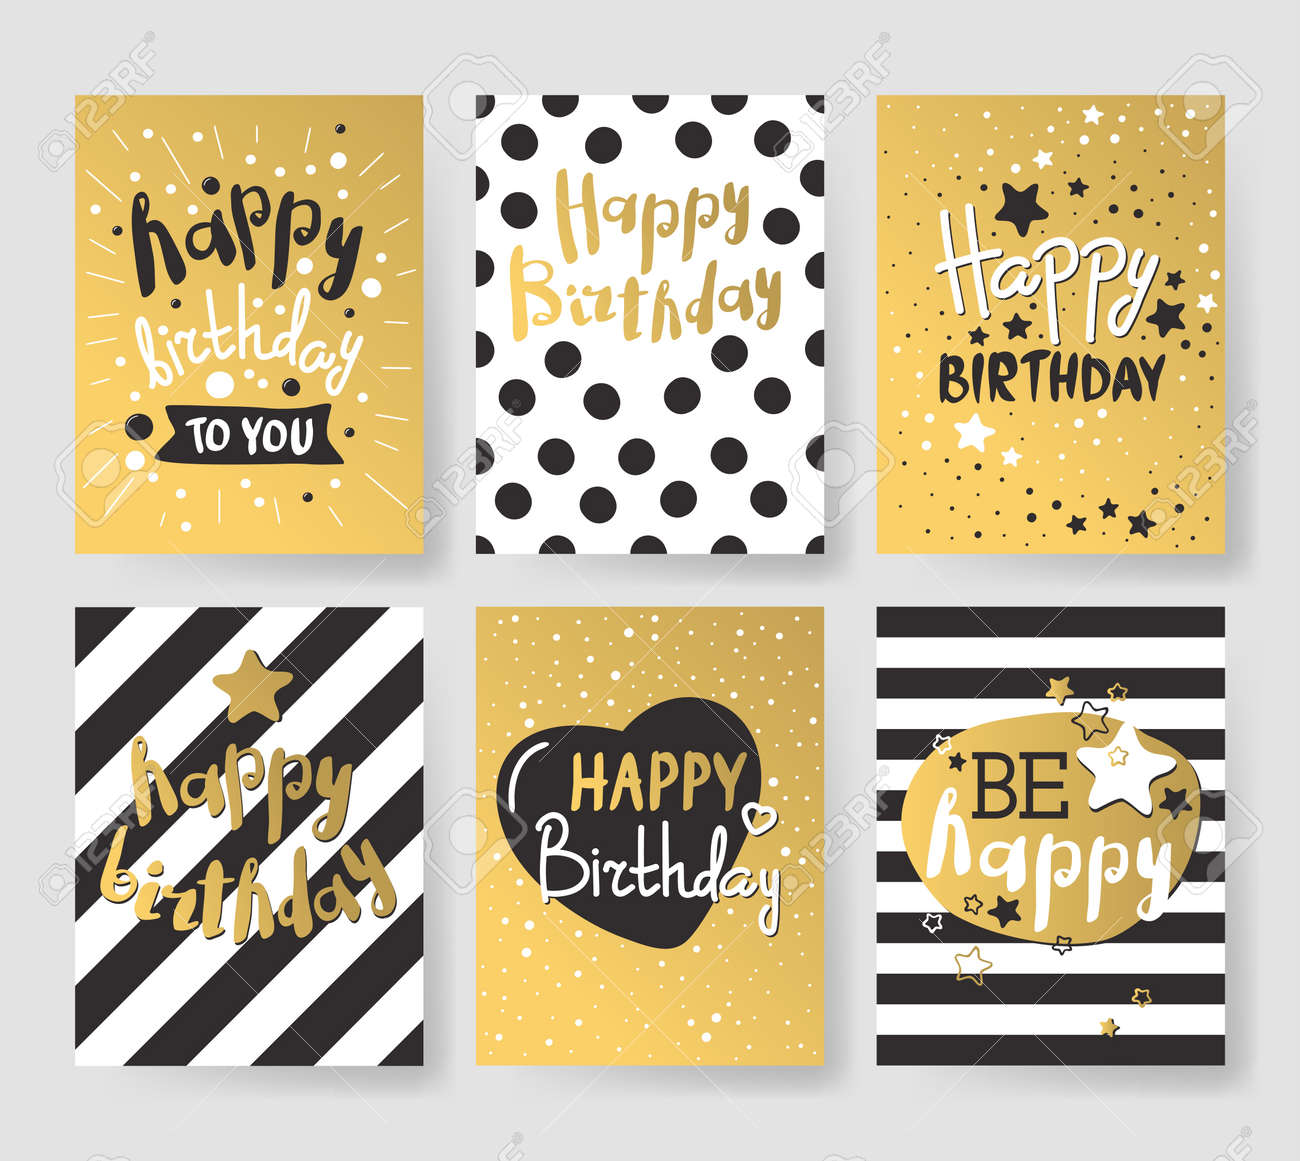 Beautiful Birthday Invitation Cards Design Gold And Black Colors ...